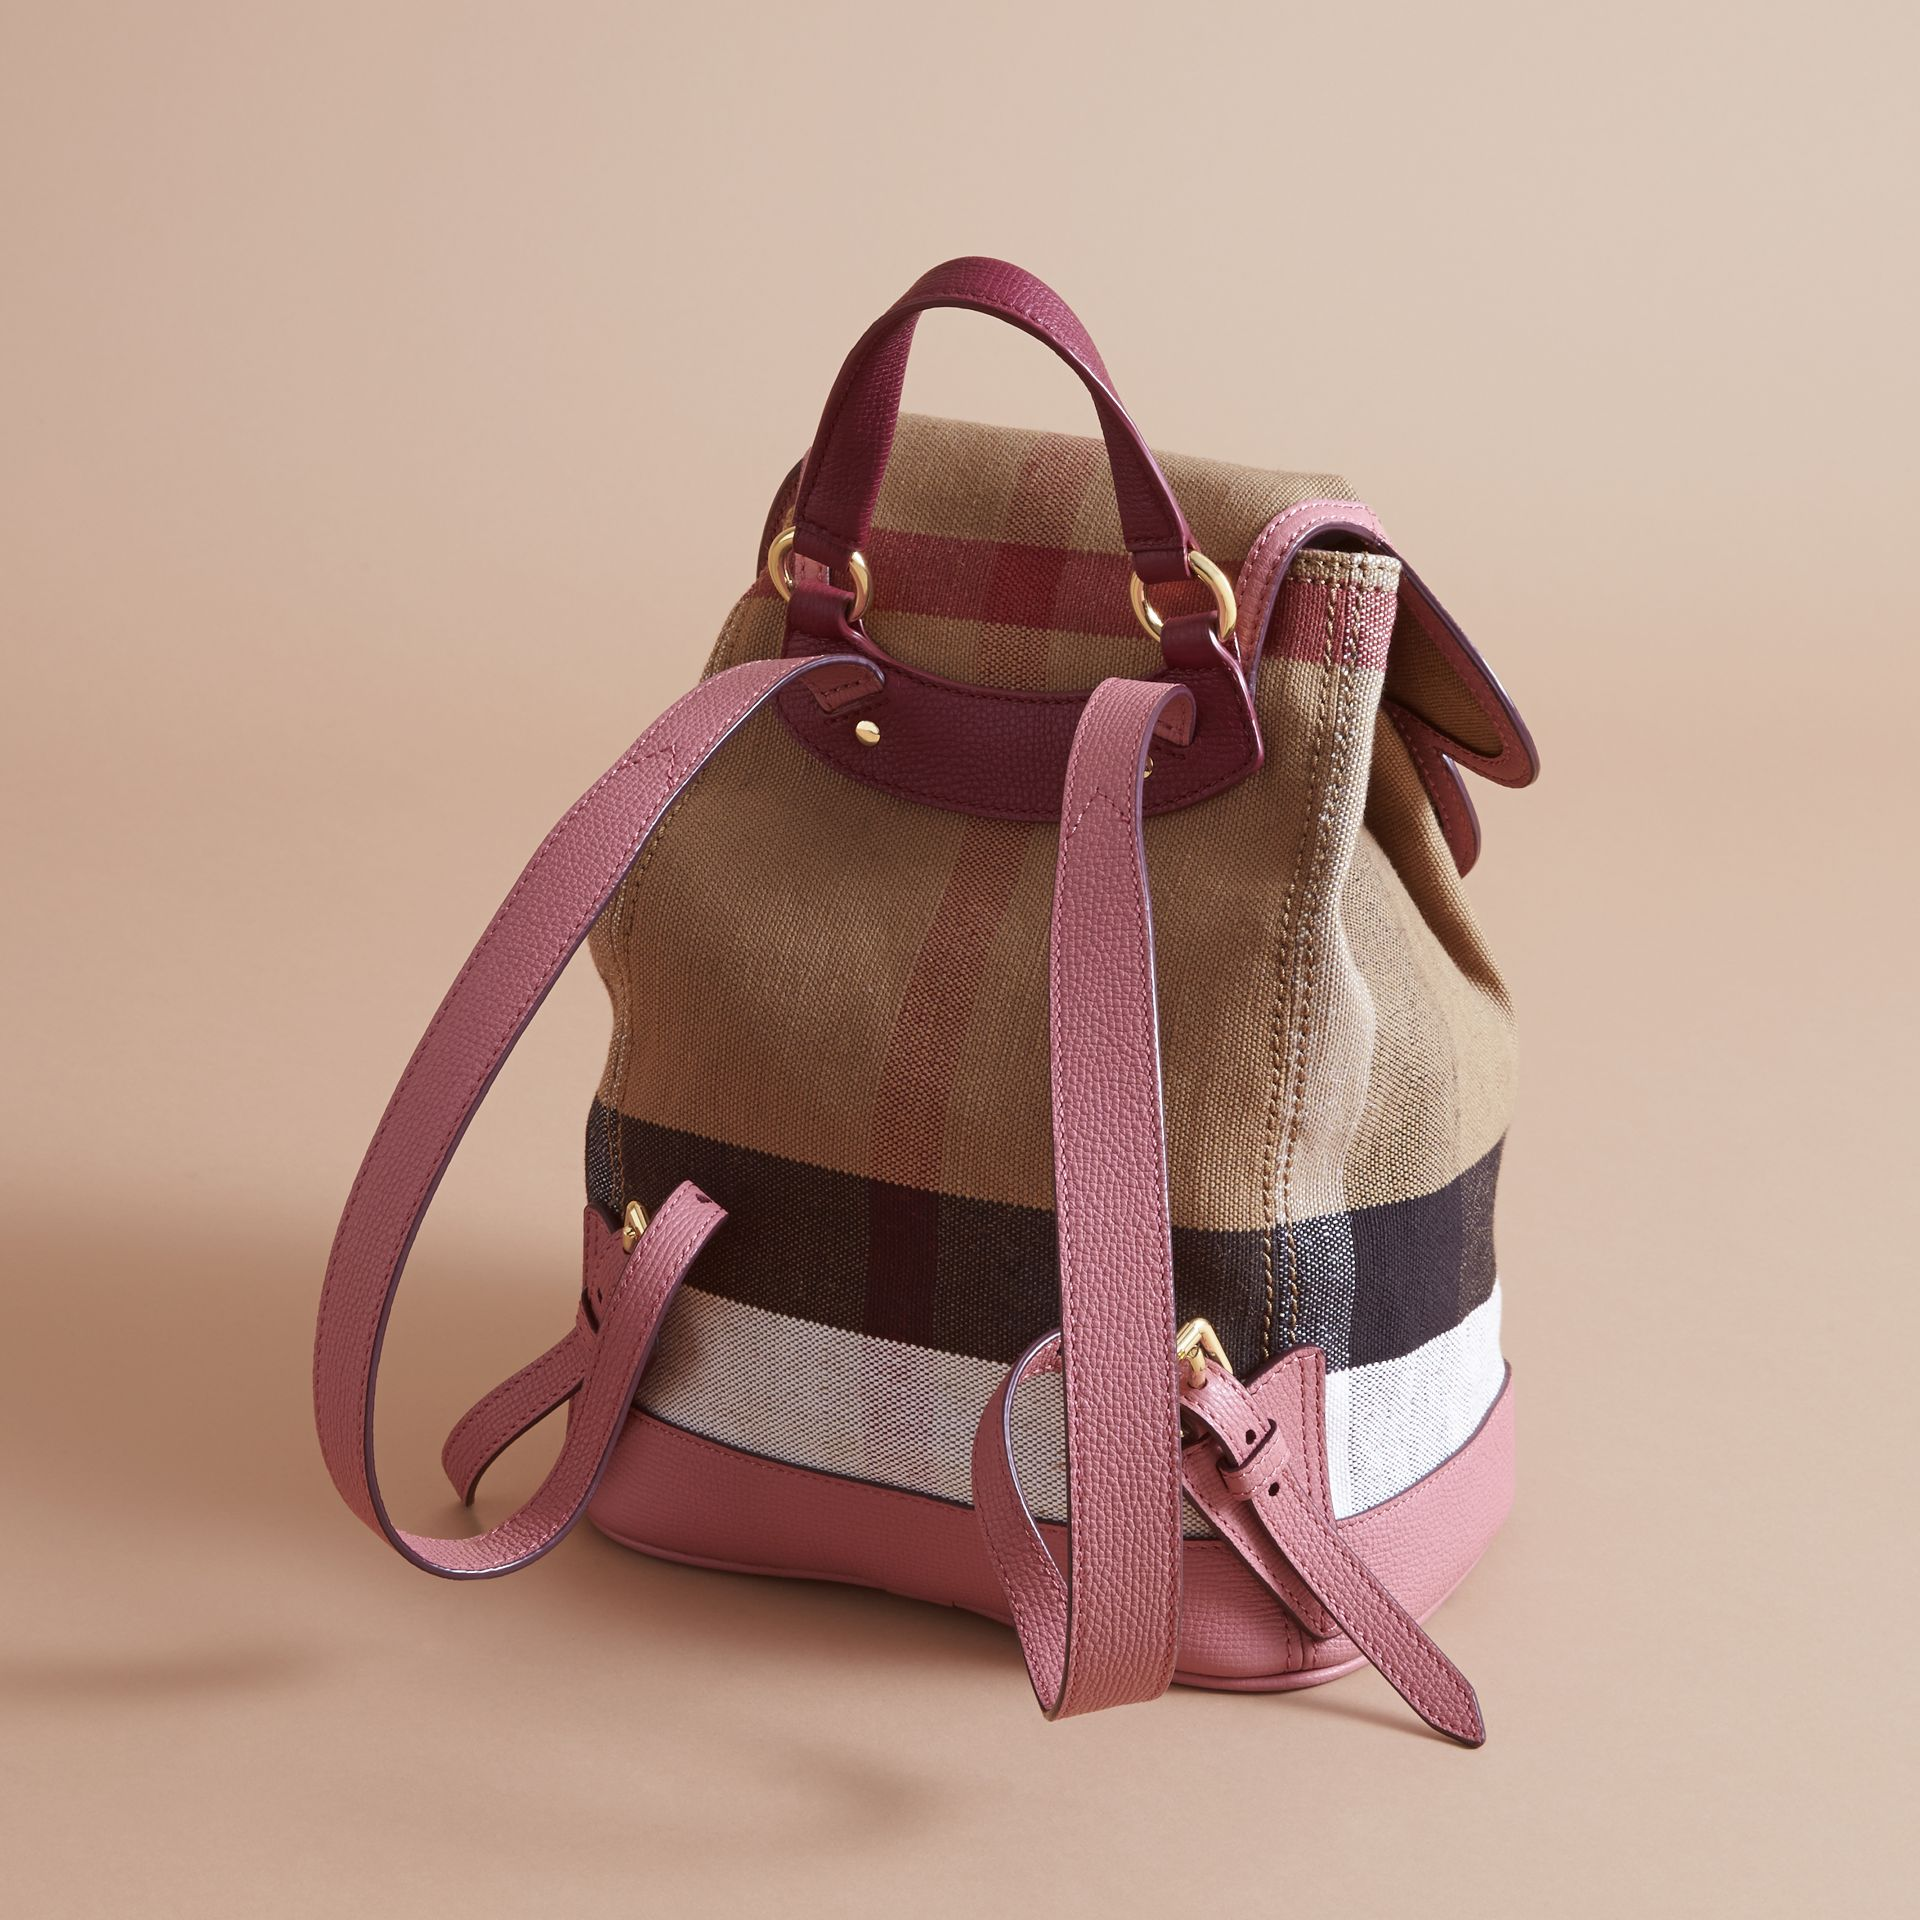 Weather Motif Canvas Check Mini Backpack in Mauve Pink | Burberry - gallery image 3